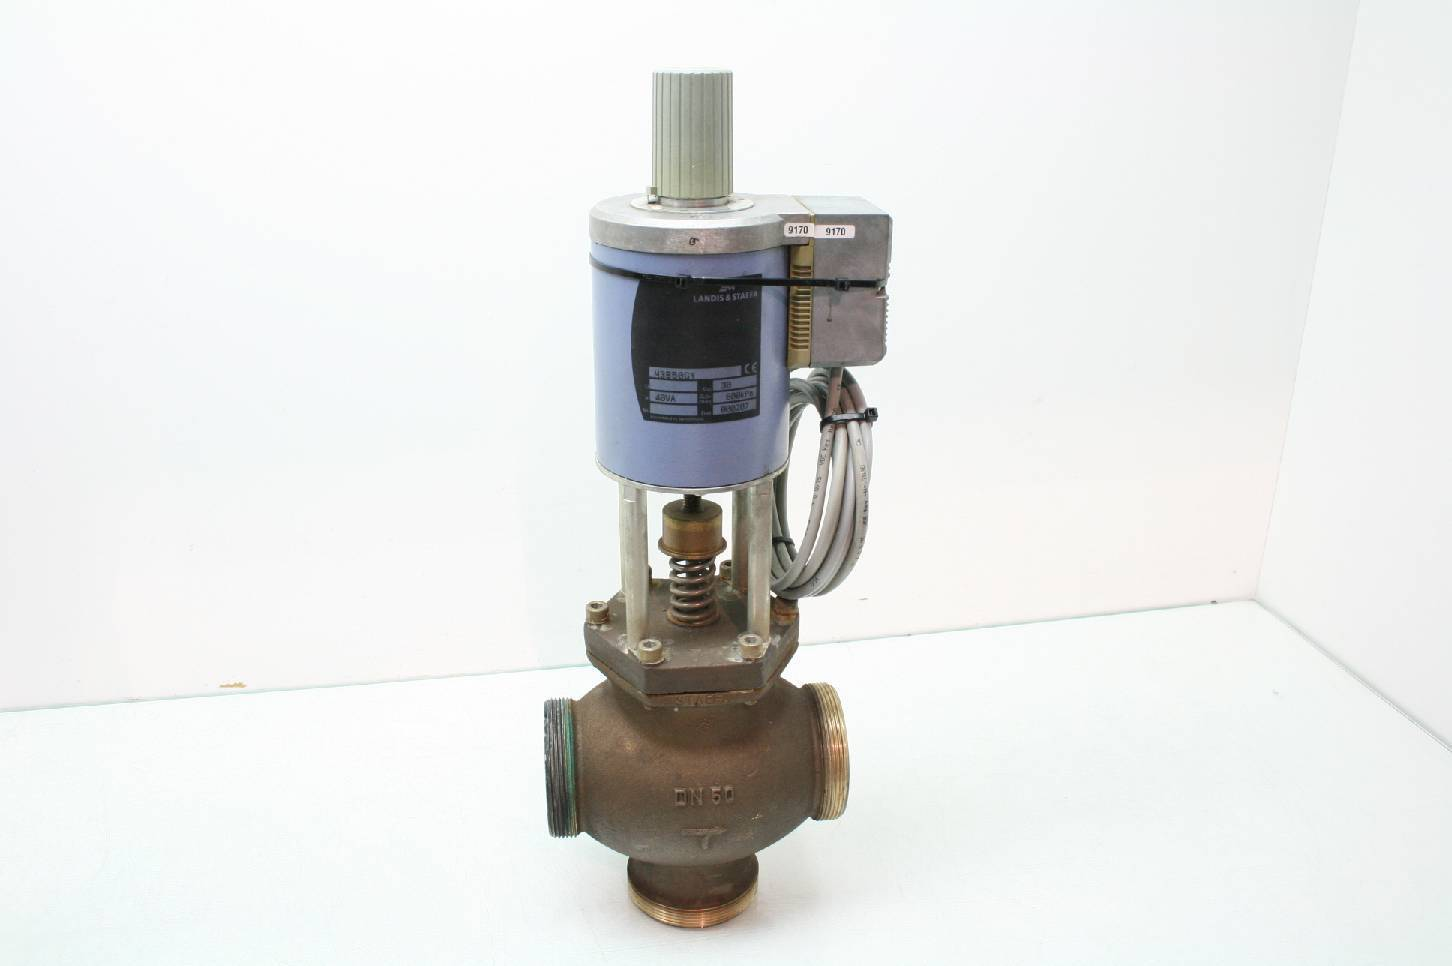 Siemens Landis & Staefa 3MB50GY Valve Actuator 3 Way Valve DN50 Mixing  Valve - For parts or not working